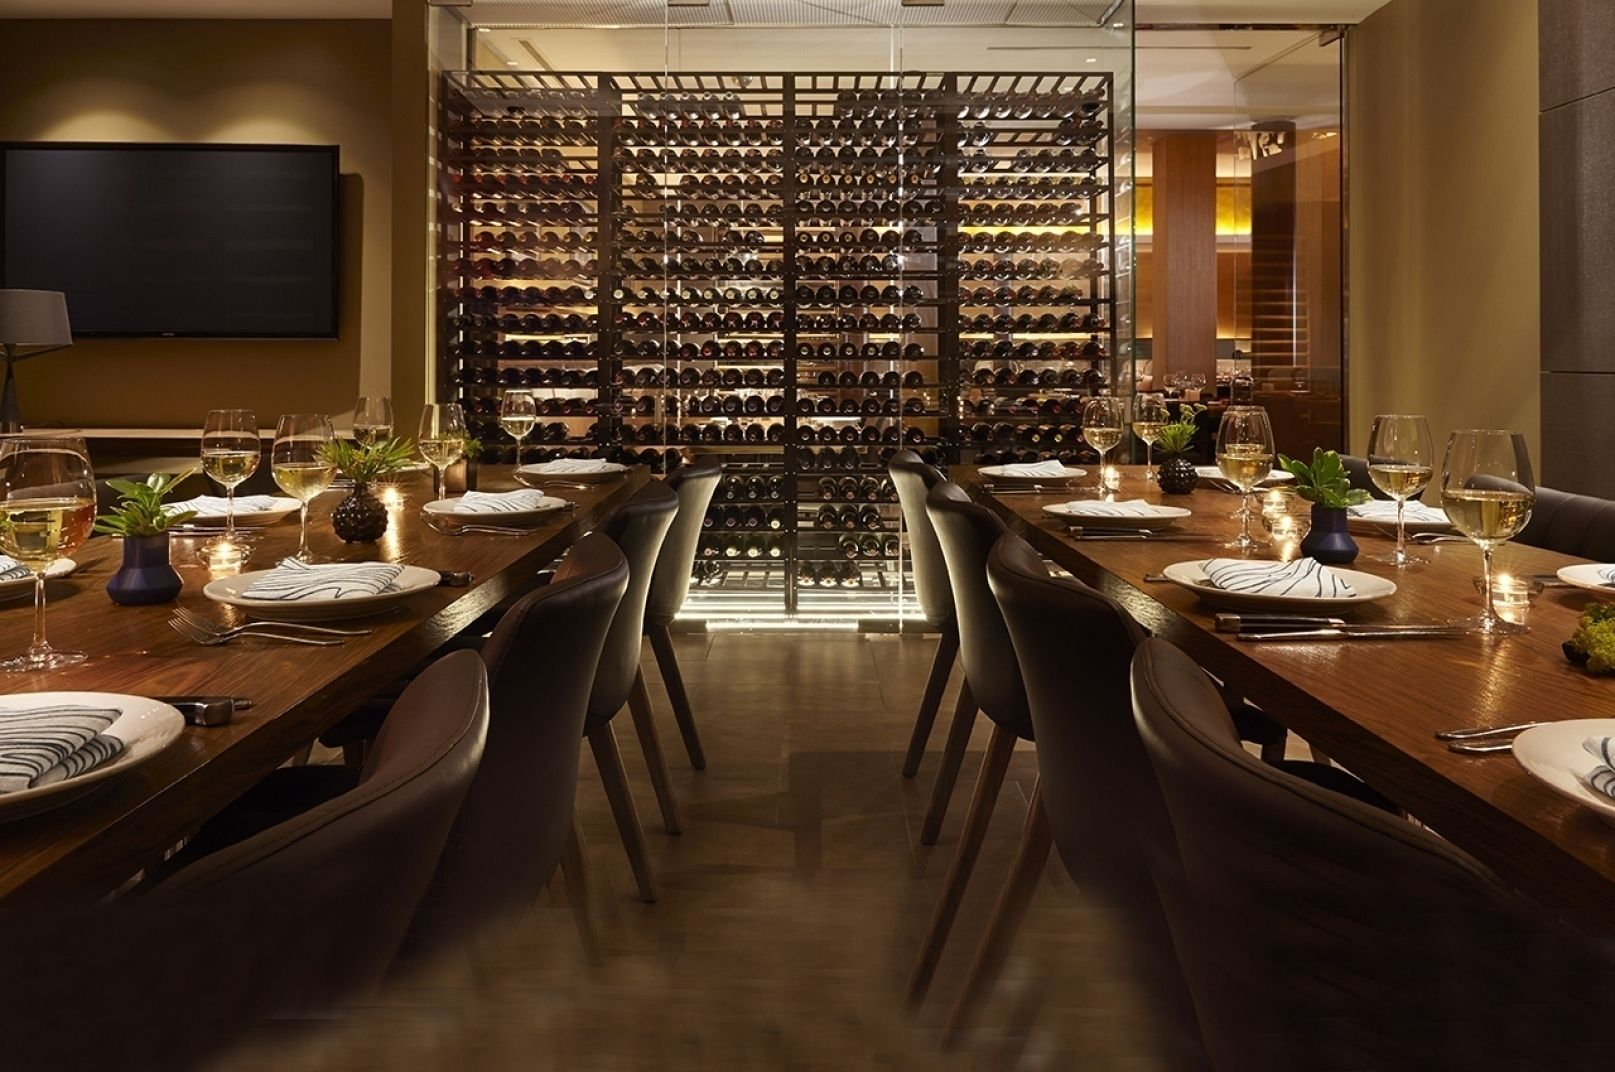 Couchtisch Chicago Chicago Restaurants With Private Dining Rooms Badezimmer